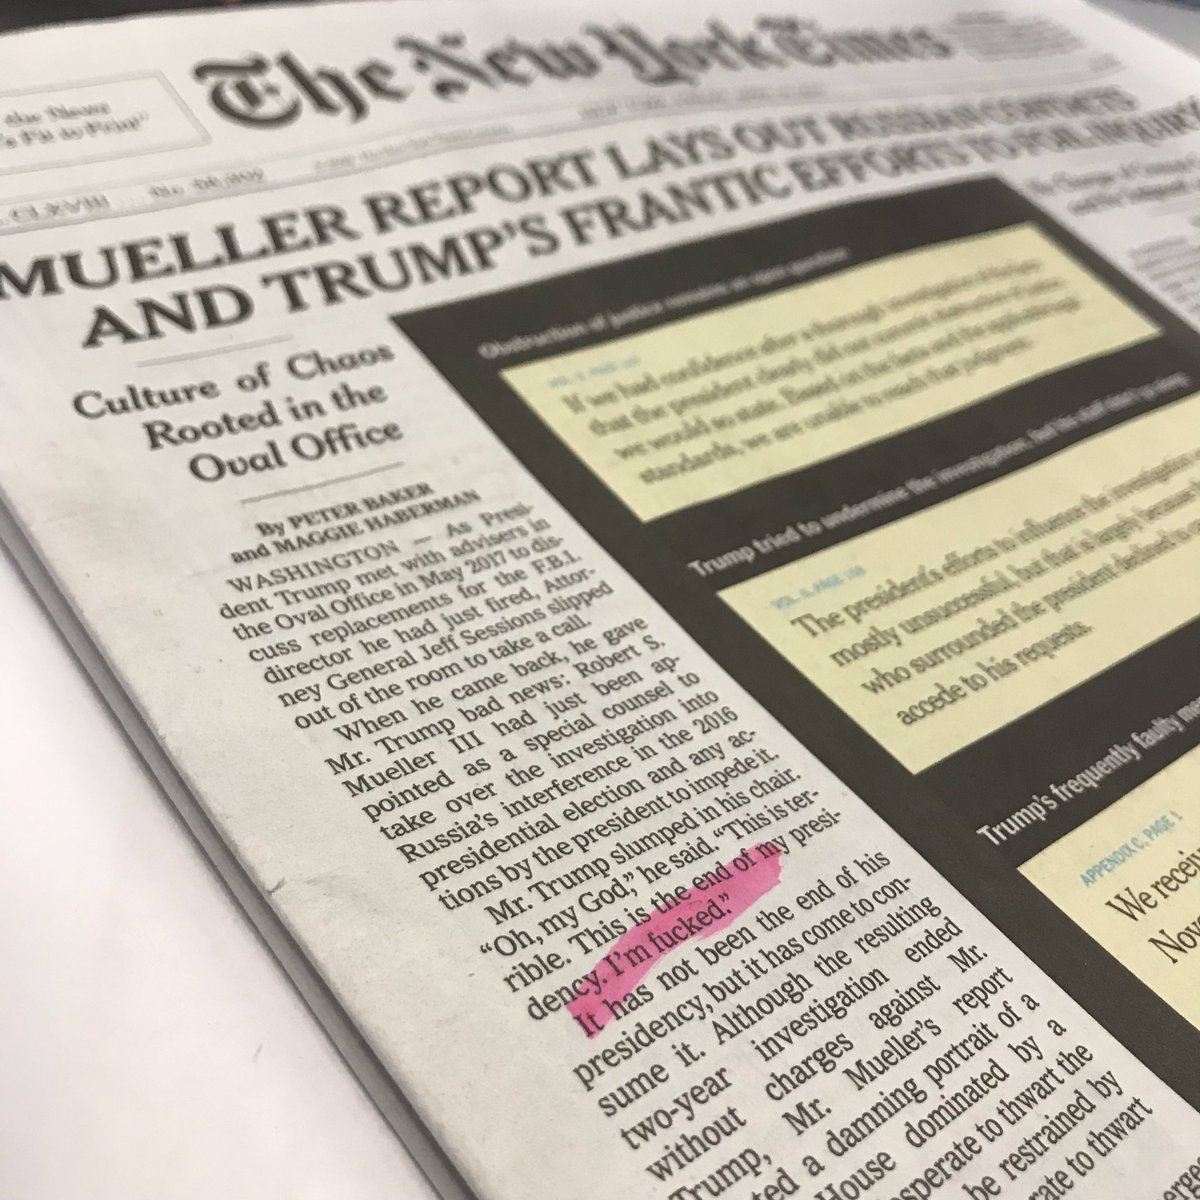 boingboing.net - Xeni Jardin - New York Times prints 'I'm fucked' on front page